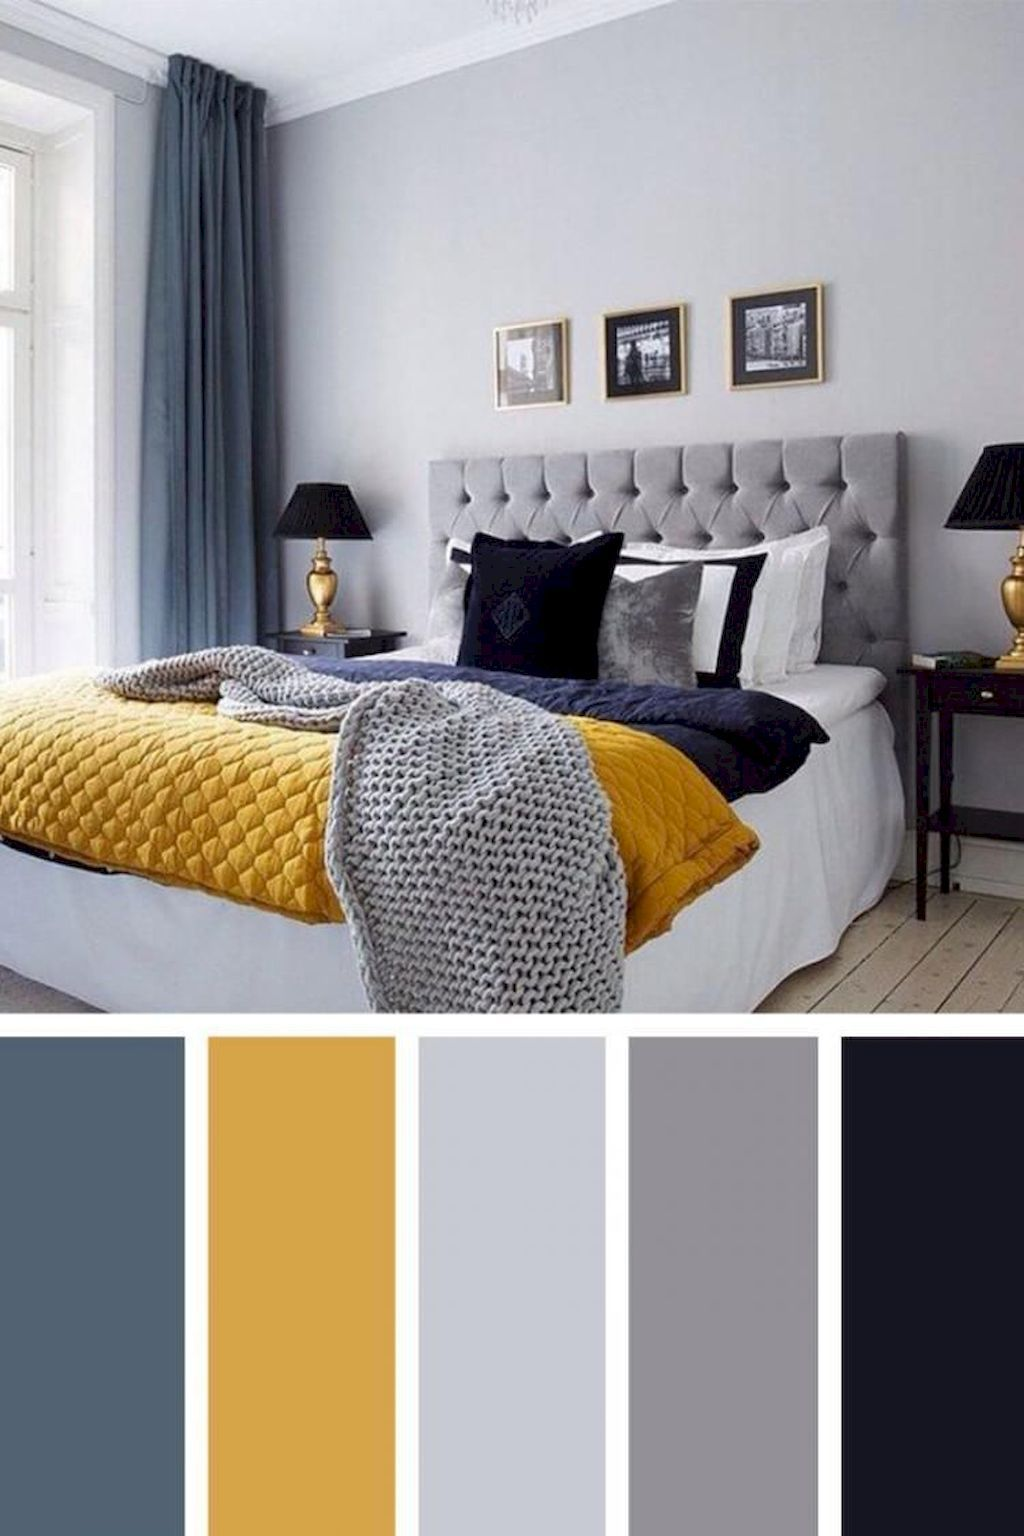 72 Simple Bedroom Decorating Ideas With Beautiful Color Browsyouroom Beautiful Bedroom Colors Best Bedroom Colors Bedroom Color Schemes